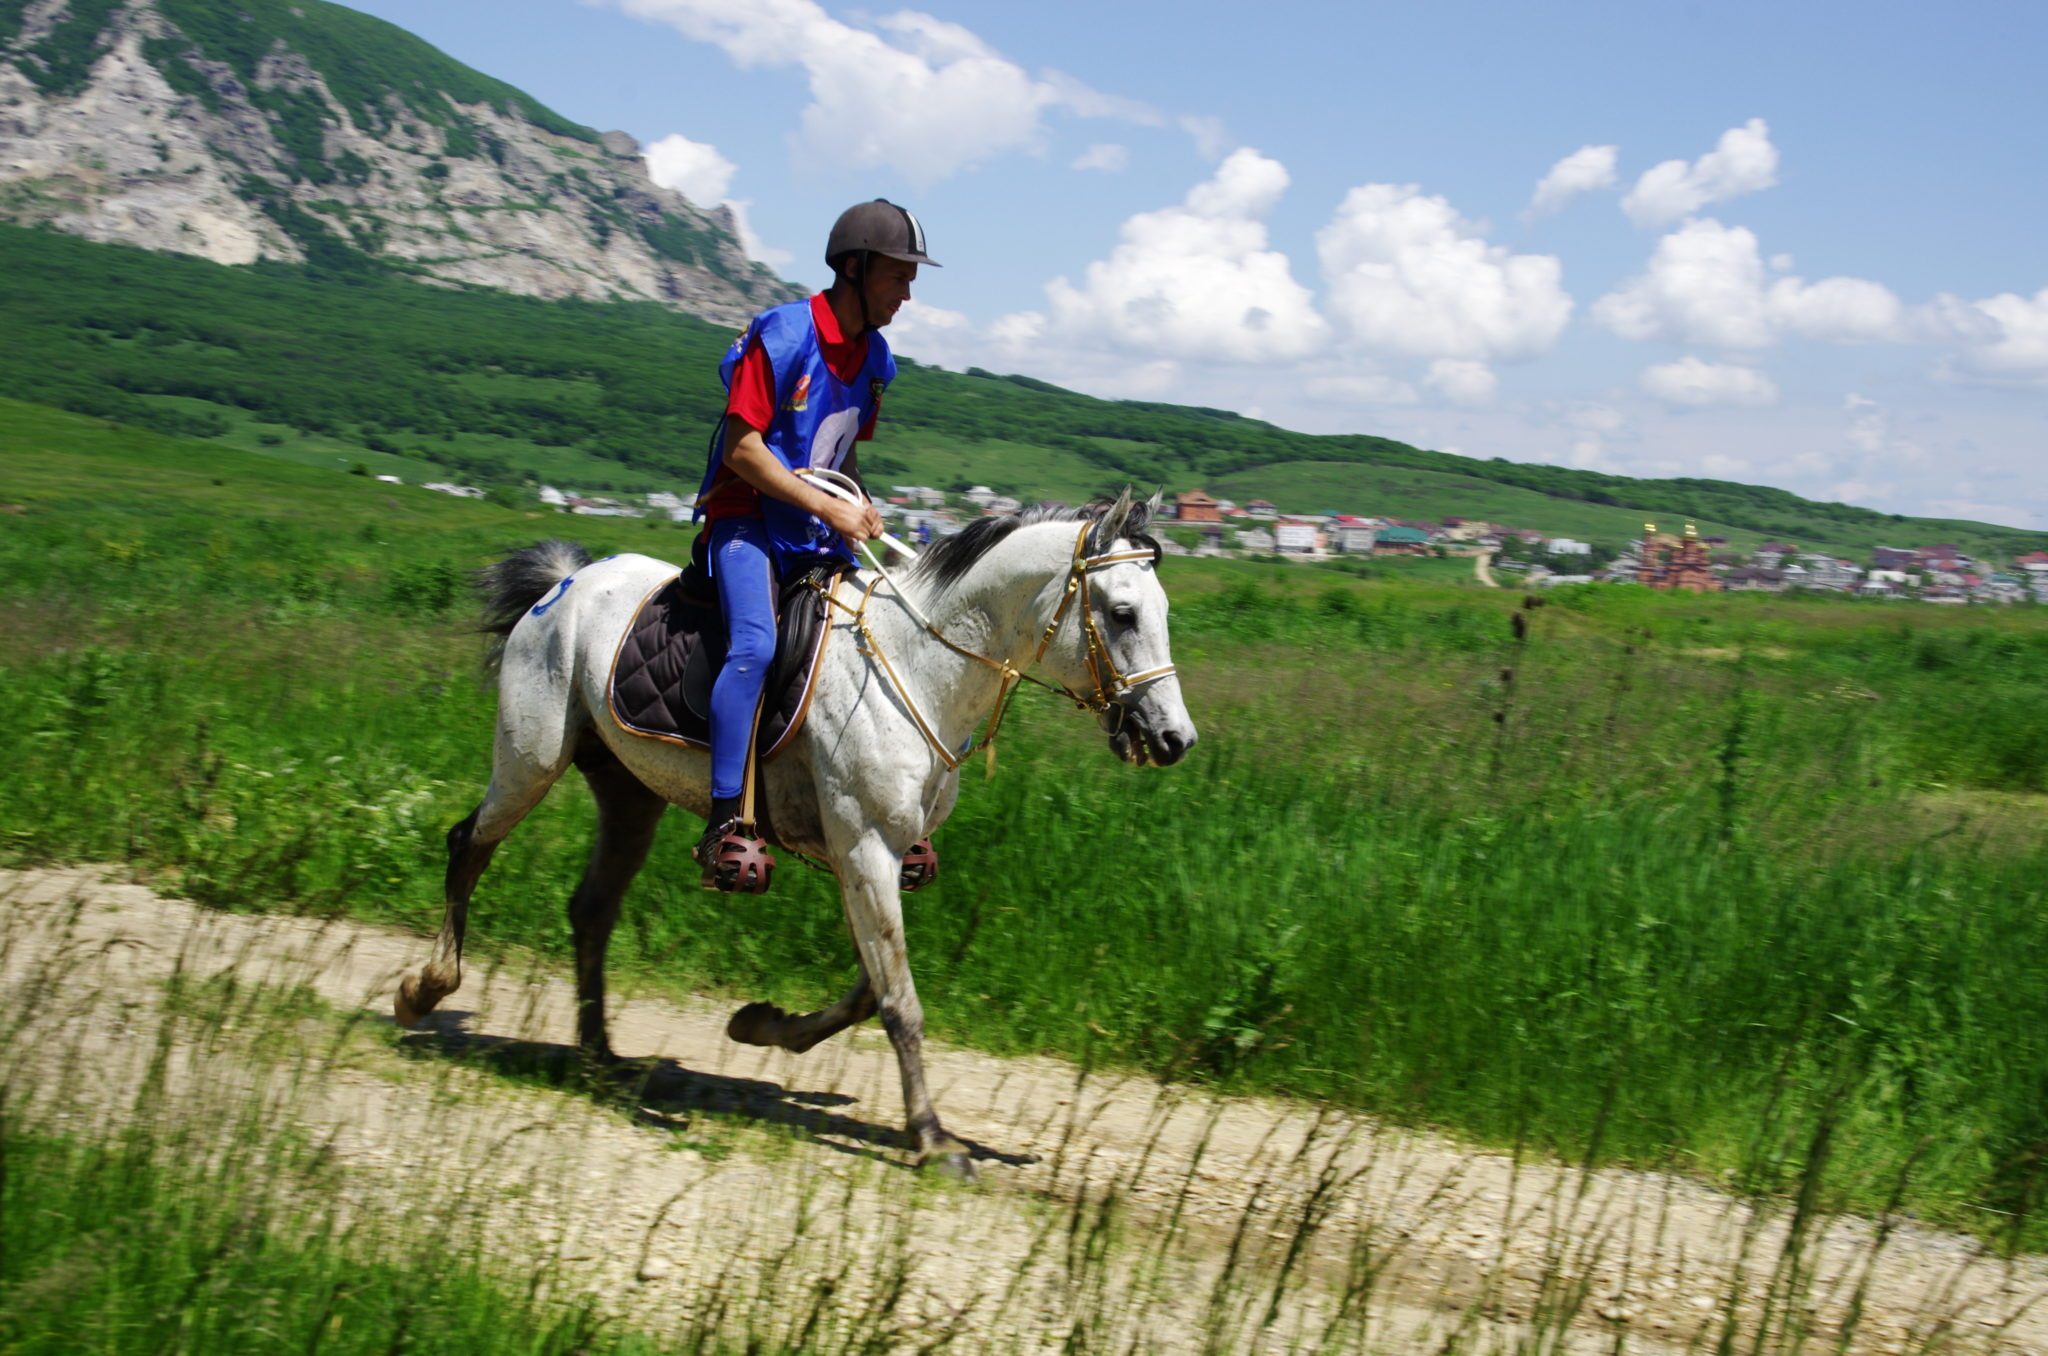 Endurance World Tersk Stud Novotersky. Riding through the fields.